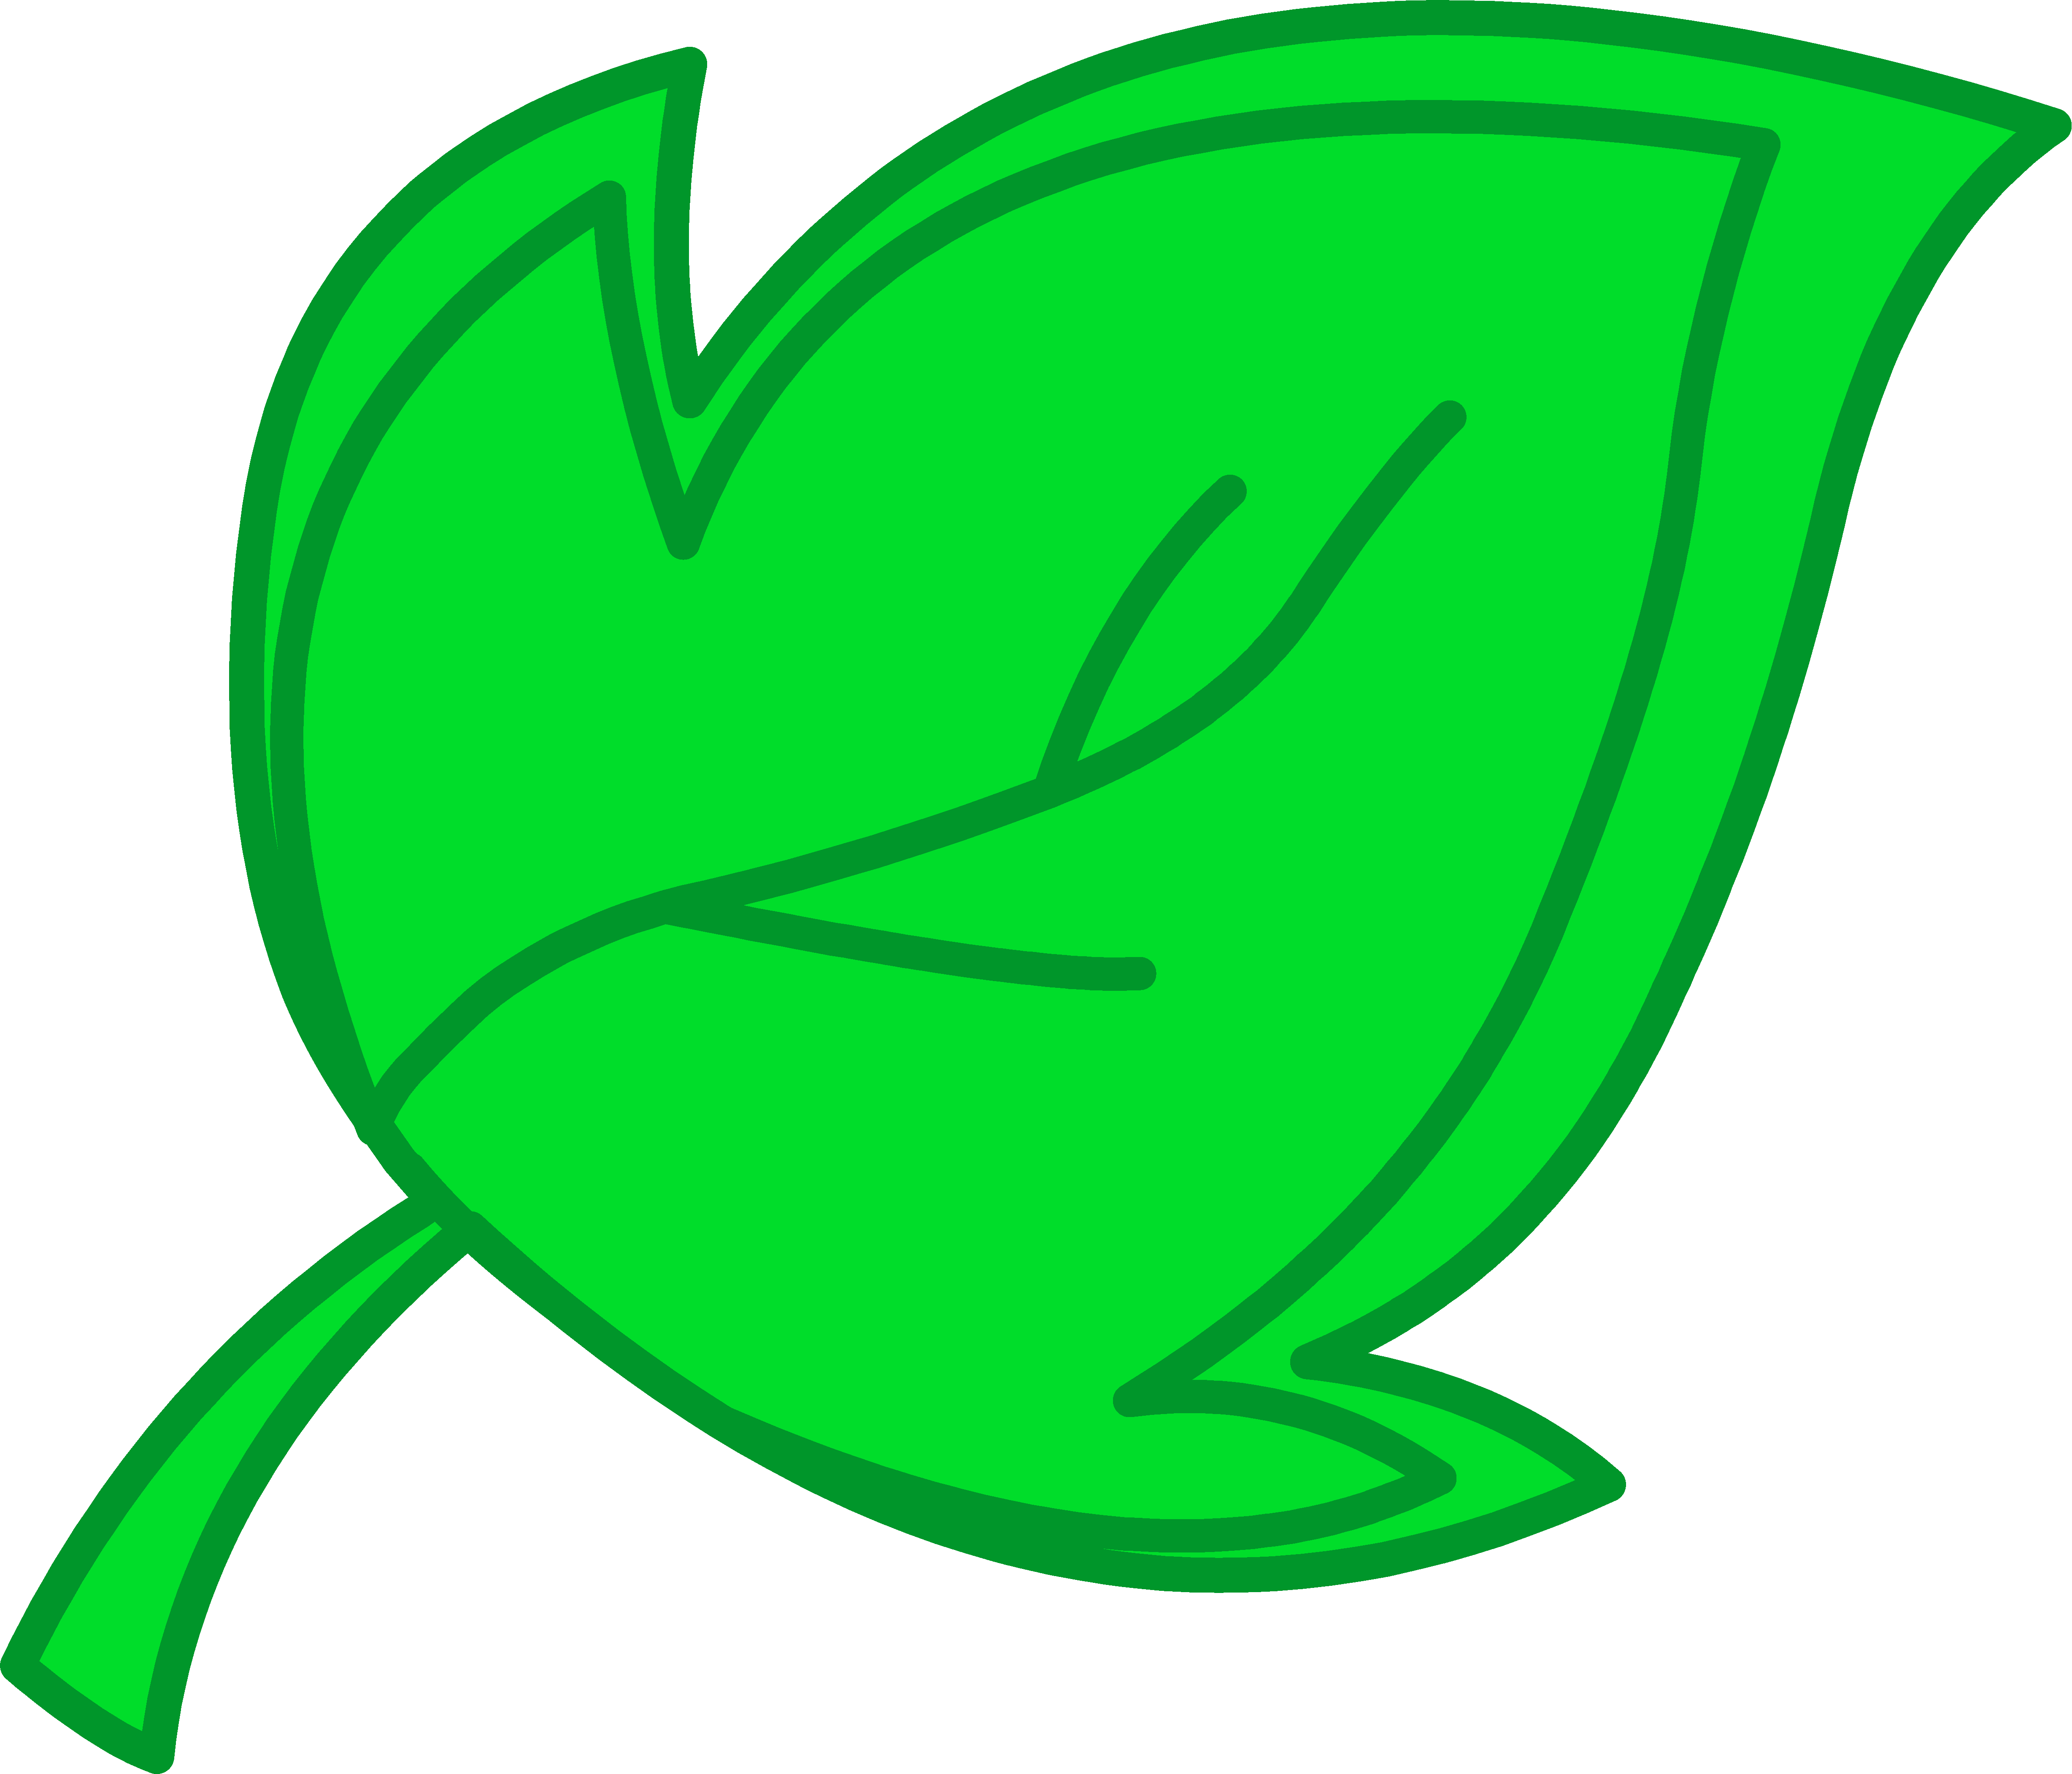 leaves clipart green object #118.